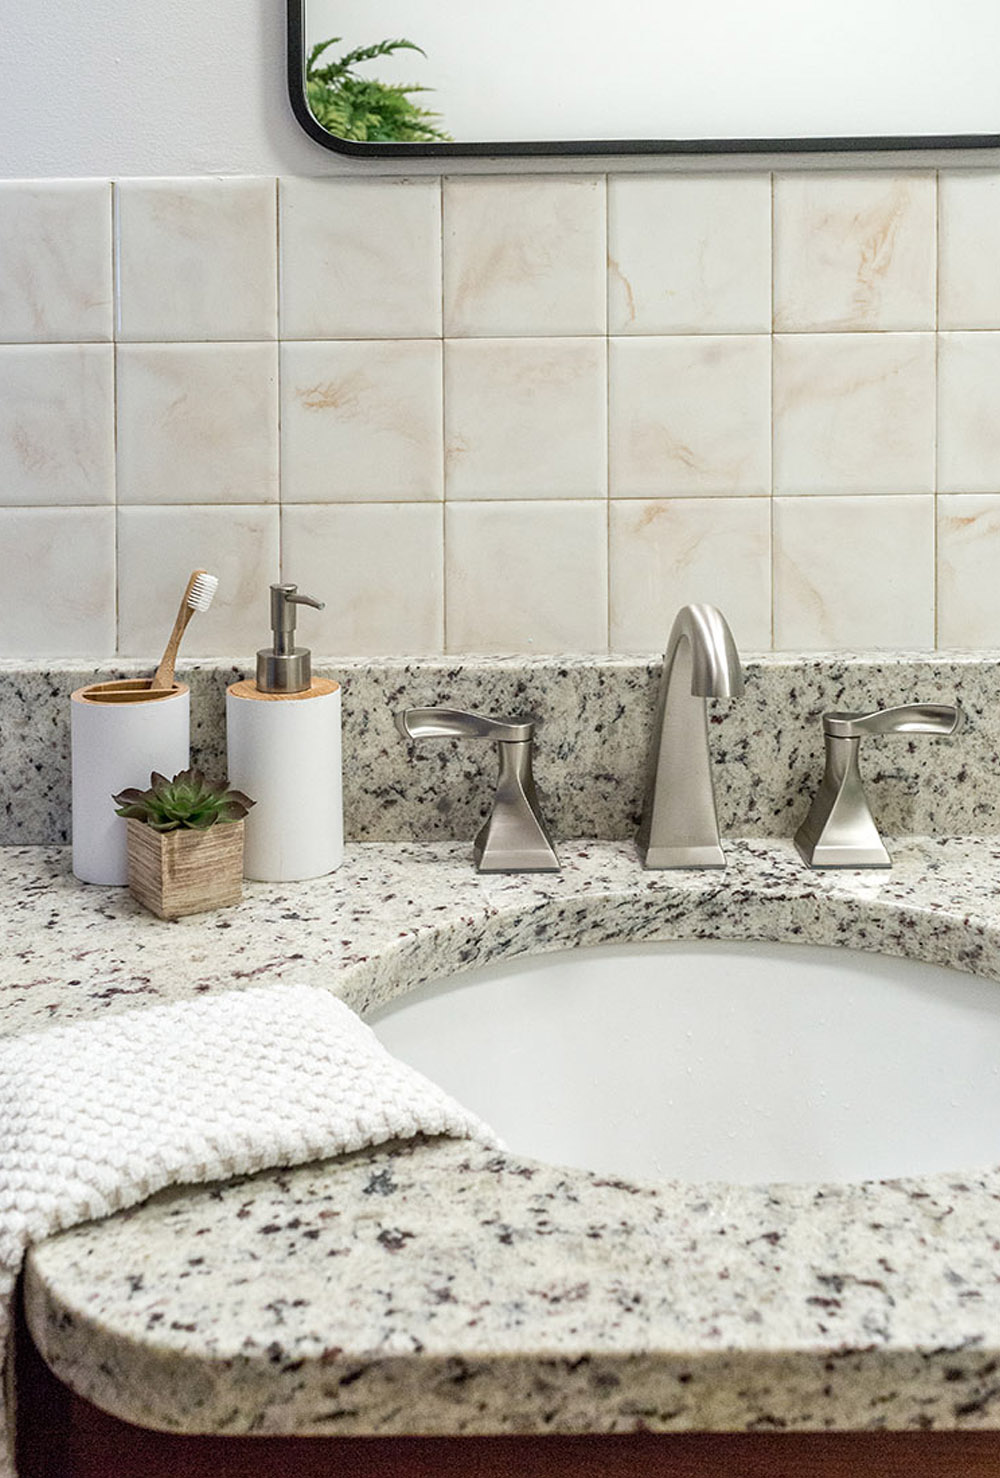 Marble bathroom countertop with a white hand towel, silver appliances and white soap dispenser, cream wall tile and a mirror.